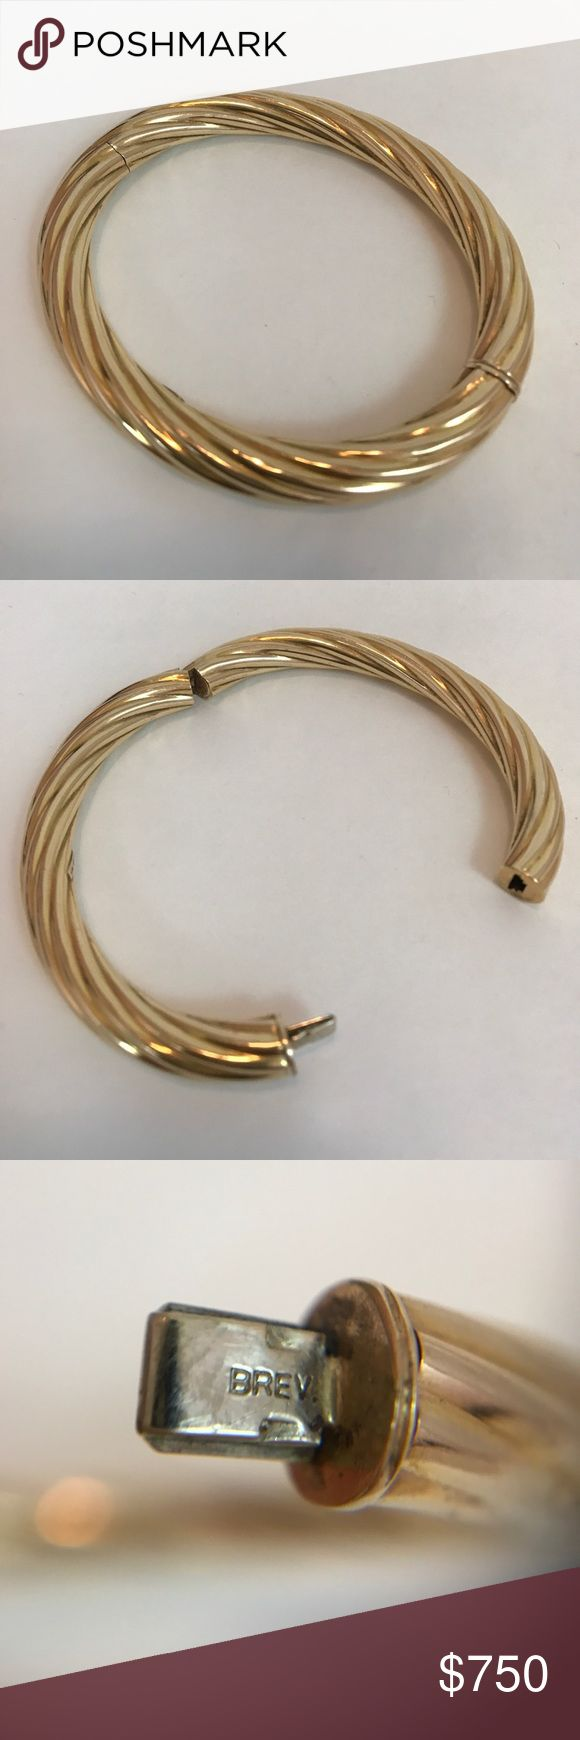 "Beautiful Hinged 585 Gold Bangle Bracelet  (14K) Beautiful hinged 585 gold bangle bracelet. 585 is equivalent to 14K gold. This bracelet has a hidden clasp release. Fluted, rope like detailing. The bracelet has a few very hard to notice dents, shown in photos, not noticeable unless very close. Marked BREV in the clasp and marked 585, along with some other markings I can't read, on the inside. Bracelet is hollow. Weight is 16.59G and 3"" across. (6.75"" diameter). This price is firm and I do…"